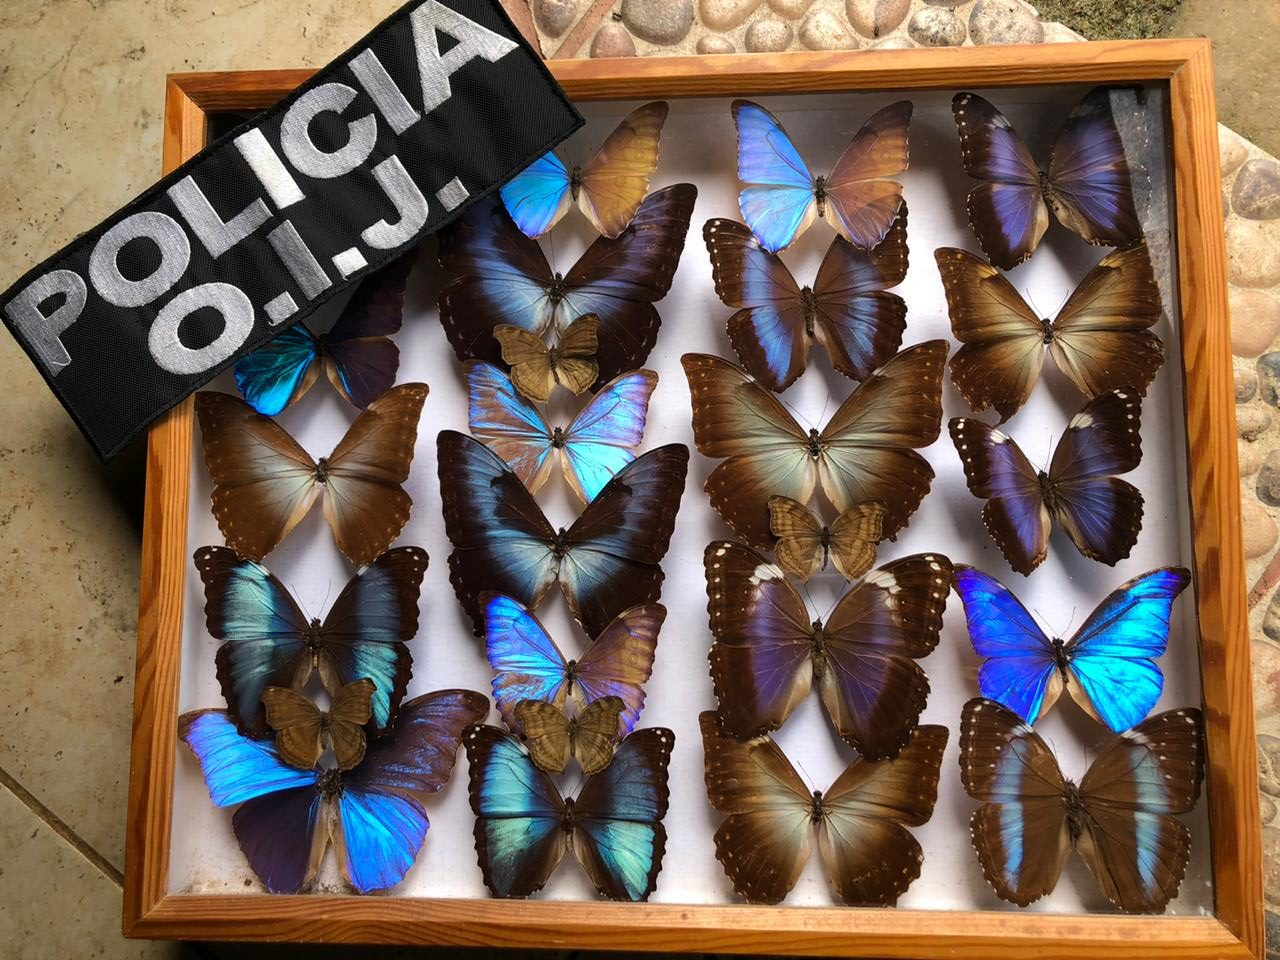 Operation against wildlife trafficking between Costa Rica and Europe